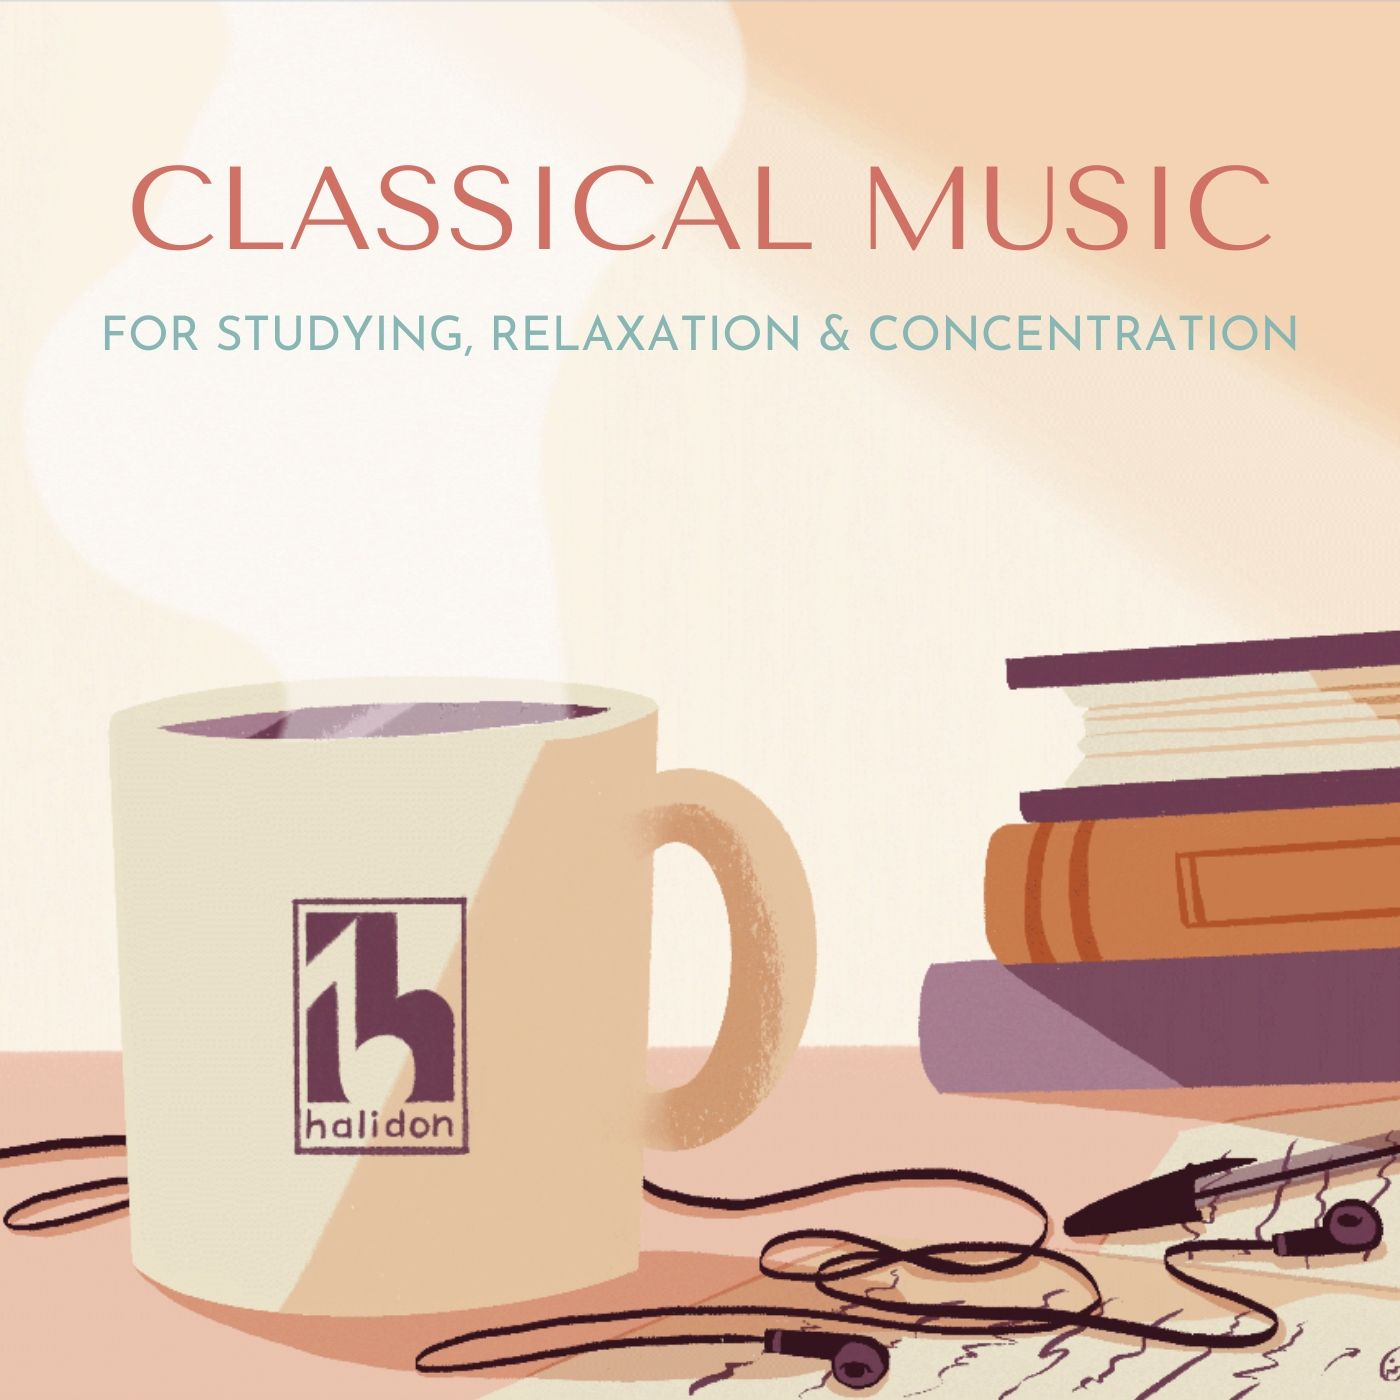 Classical Music for Studying, Relaxation & Concentration